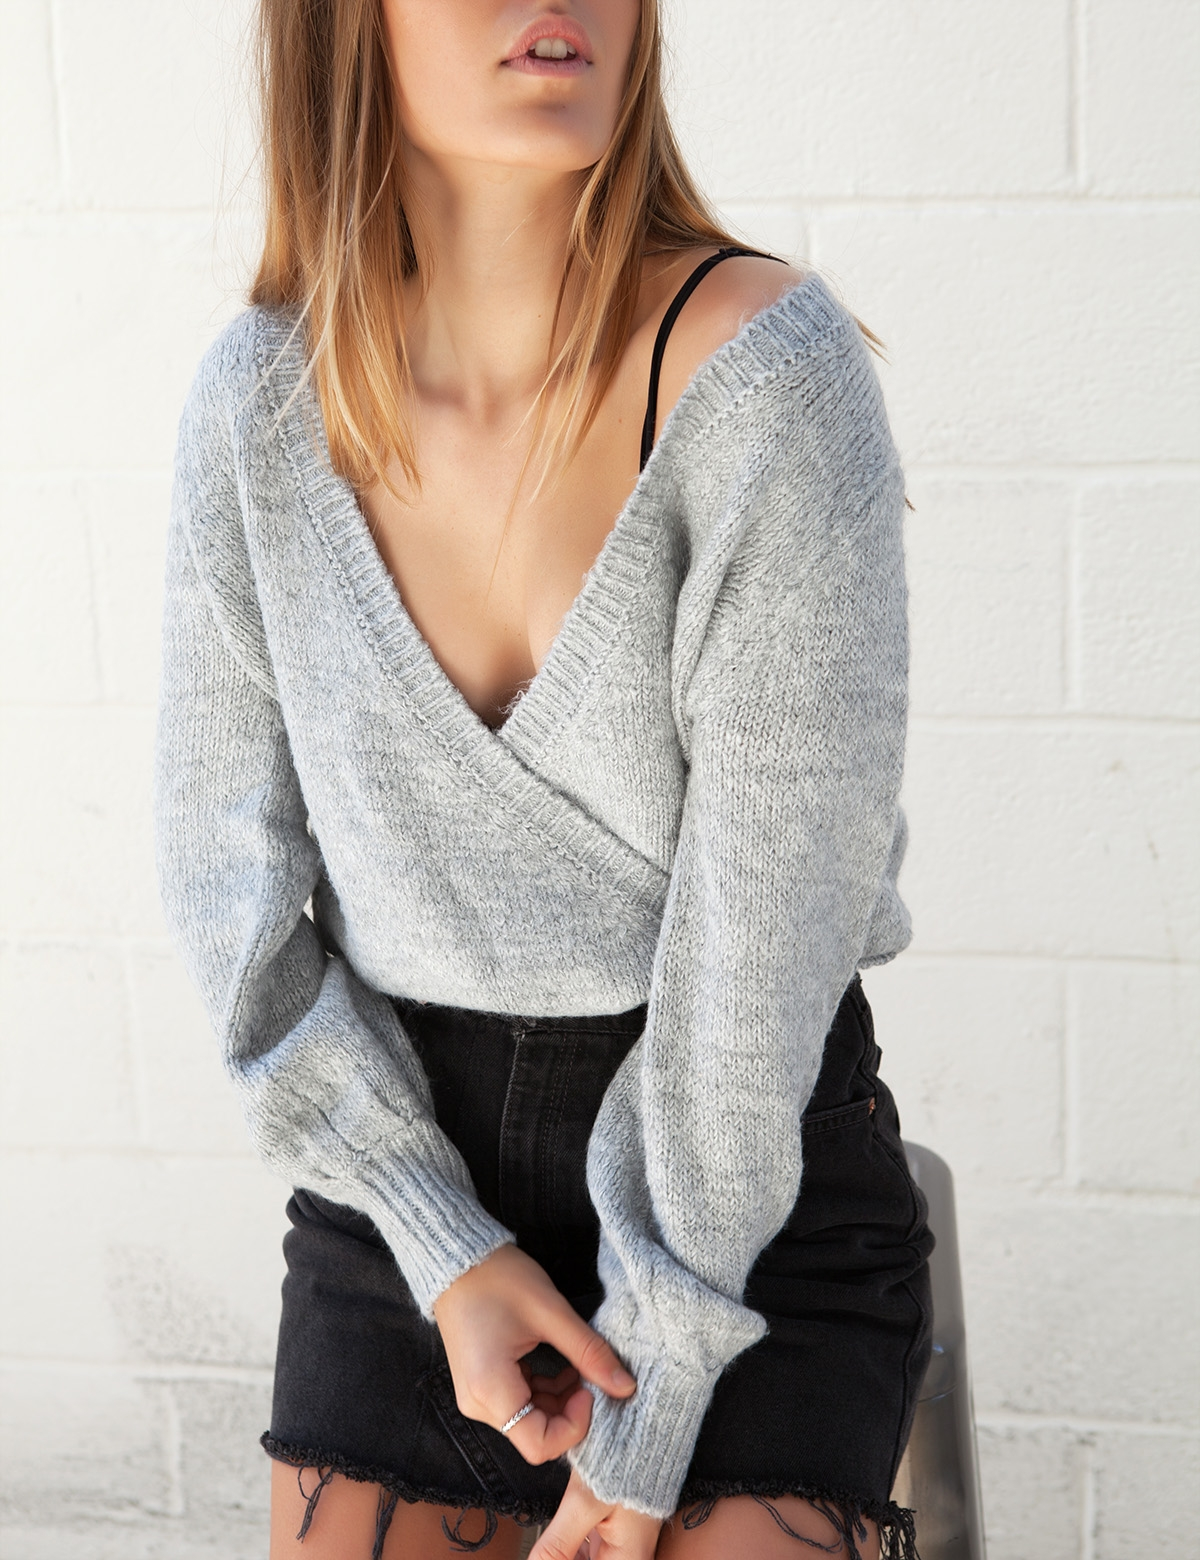 Aint No Other Wrap Sweater - Grey